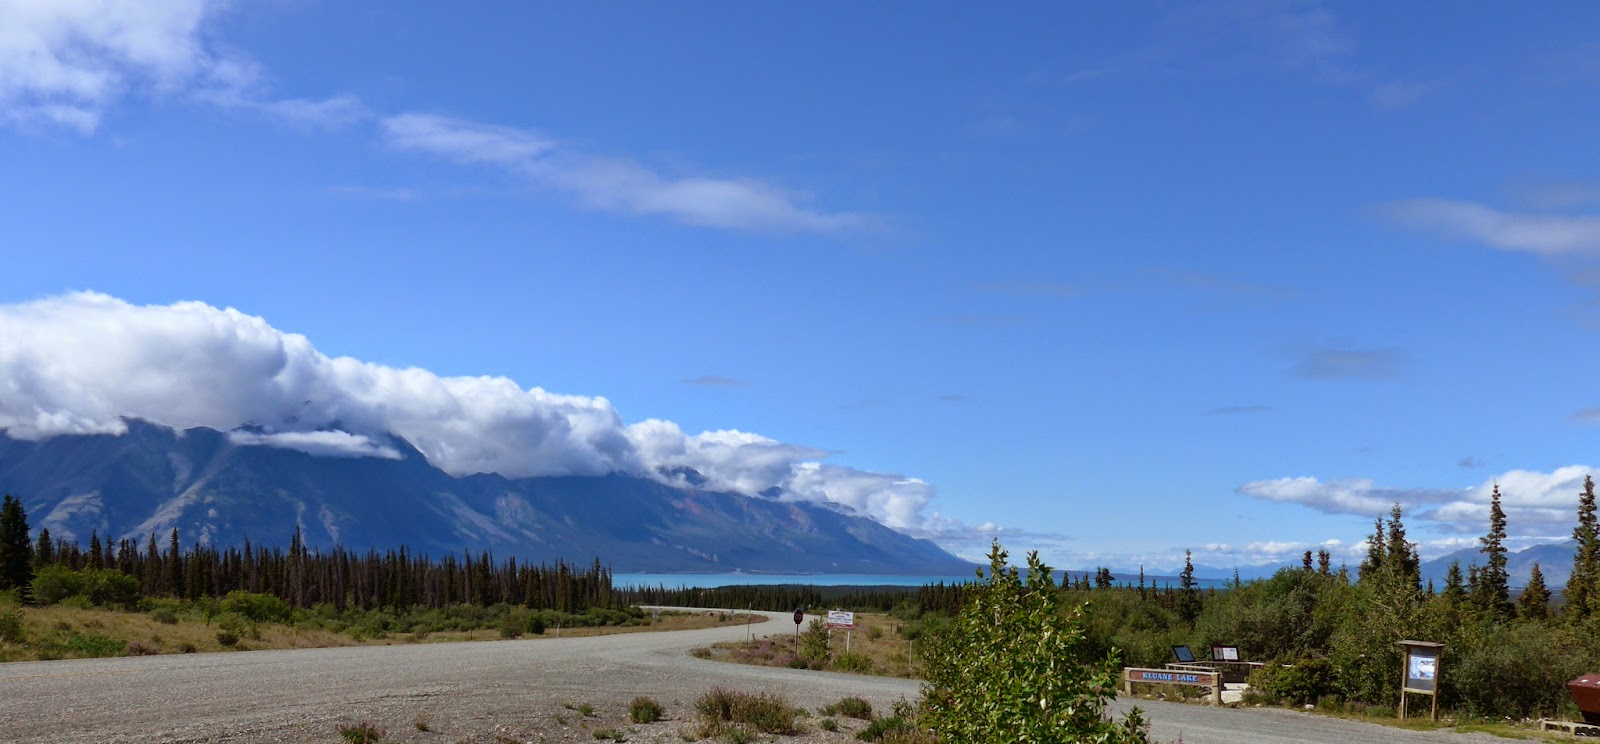 Kluane Lake in the back ground.